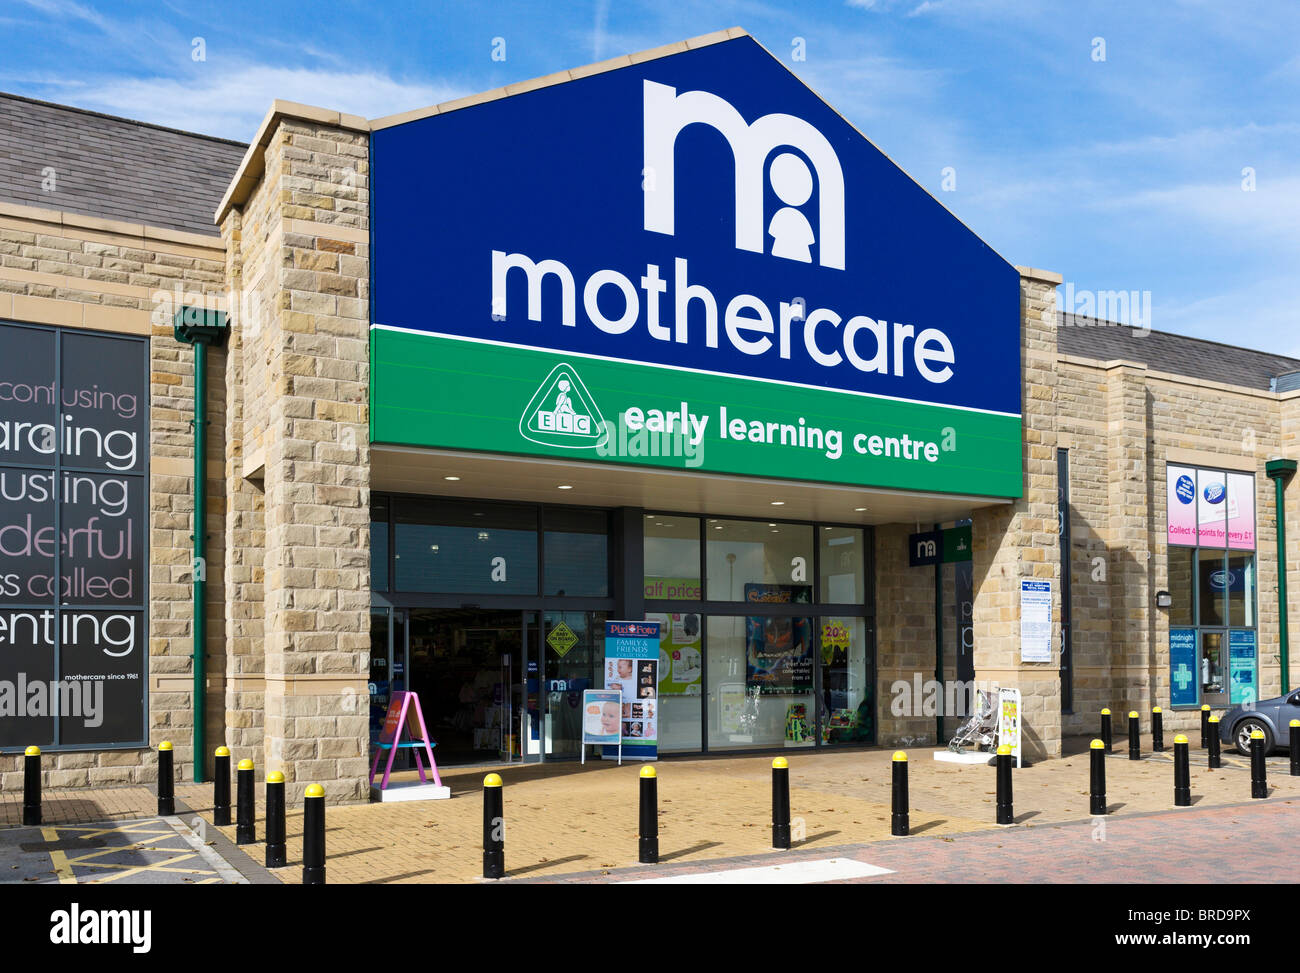 Mothercare and Early Learning Centre superstore, Great Northern Retail Park, Leeds Road, Huddersfield, West Yorkshire, - Stock Image